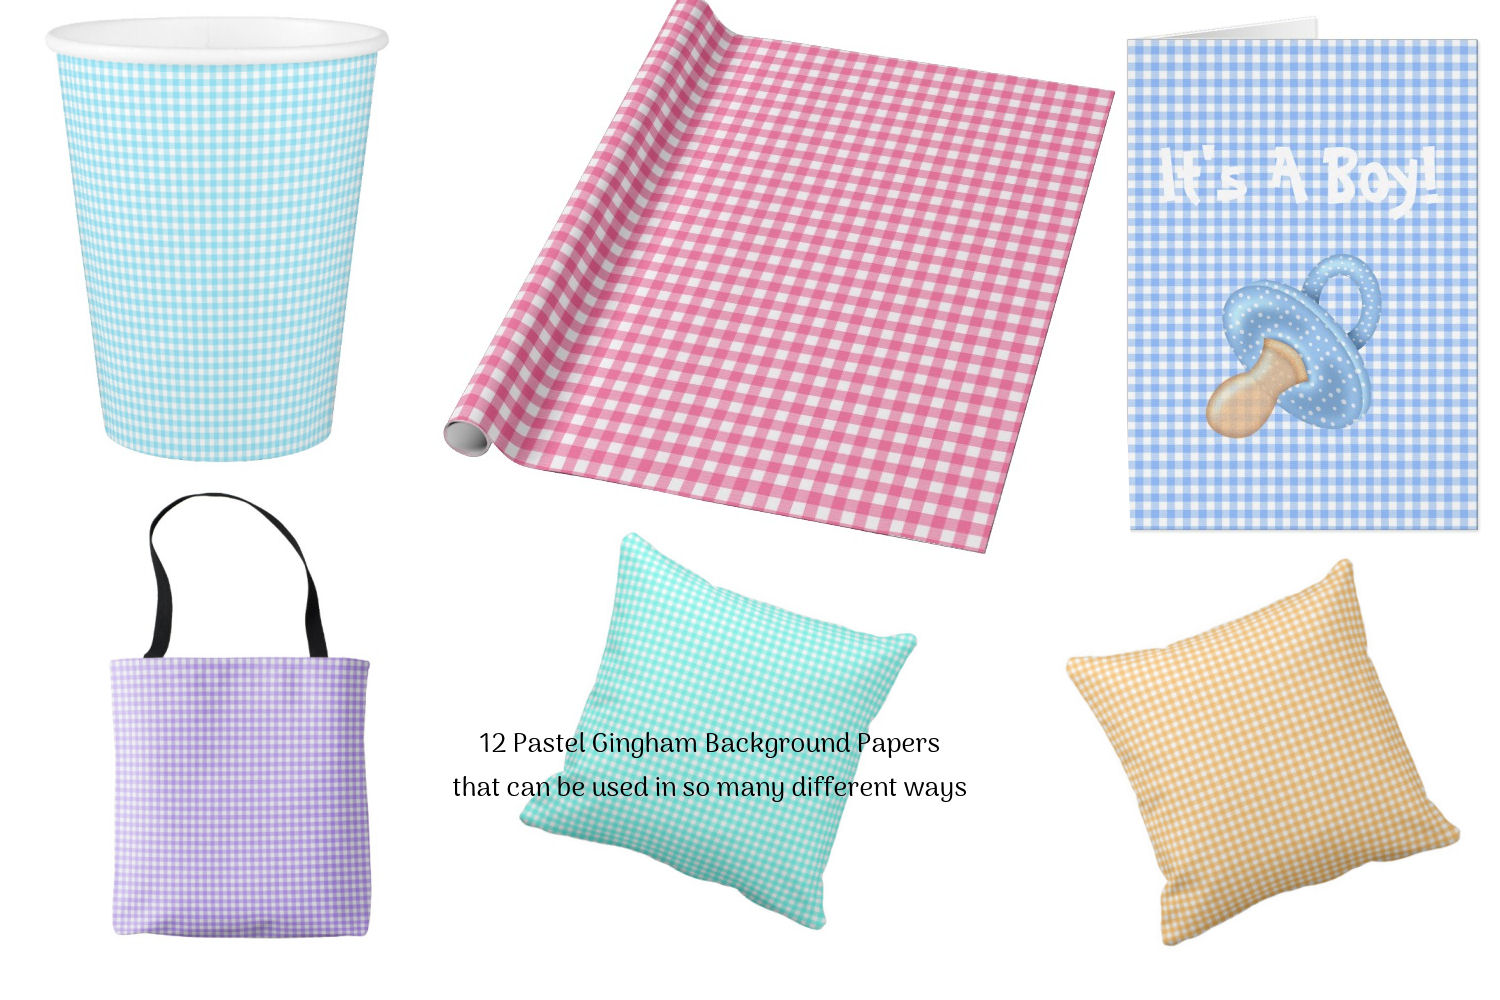 Gingham Background Papers example image 3